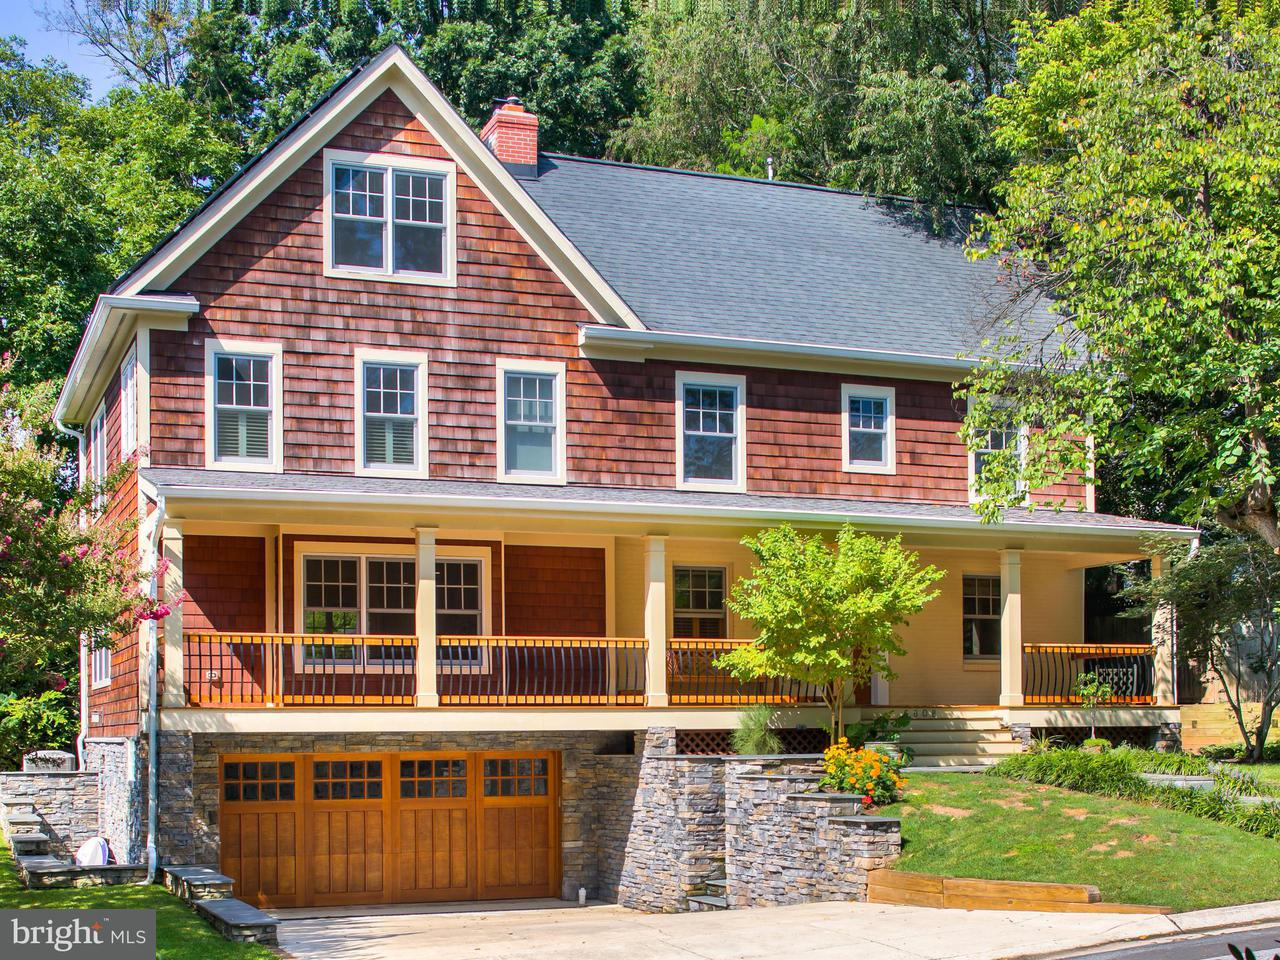 Single Family Home for Sale at 6808 Brennon Lane 6808 Brennon Lane Chevy Chase, Maryland 20815 United States